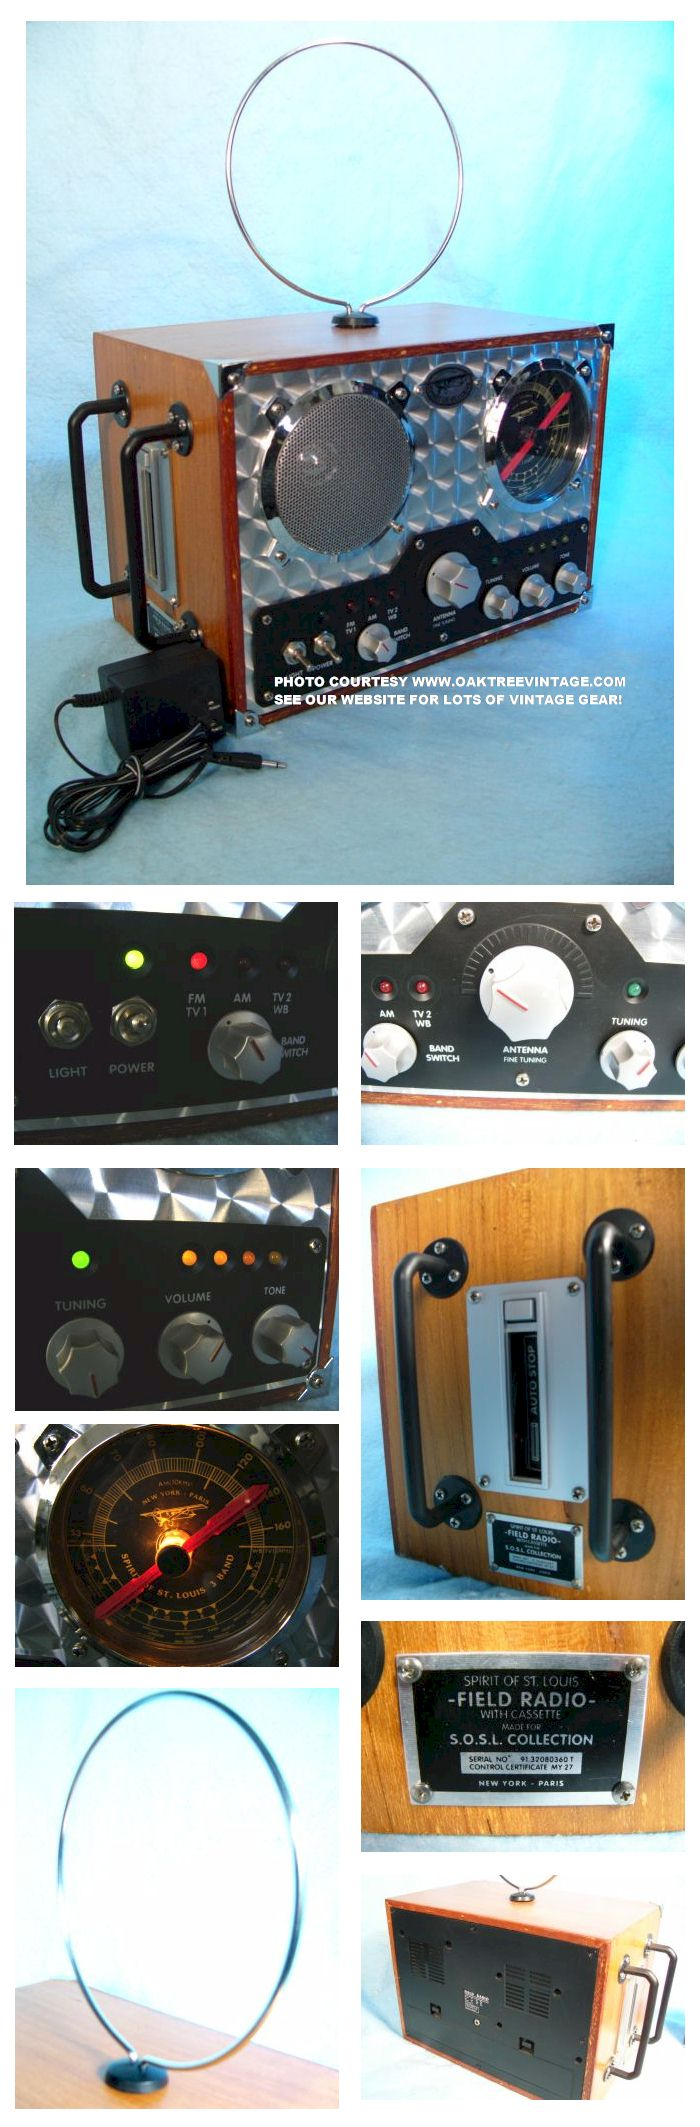 Transistor Radios for sale: This is our Restored / Refurbished ...